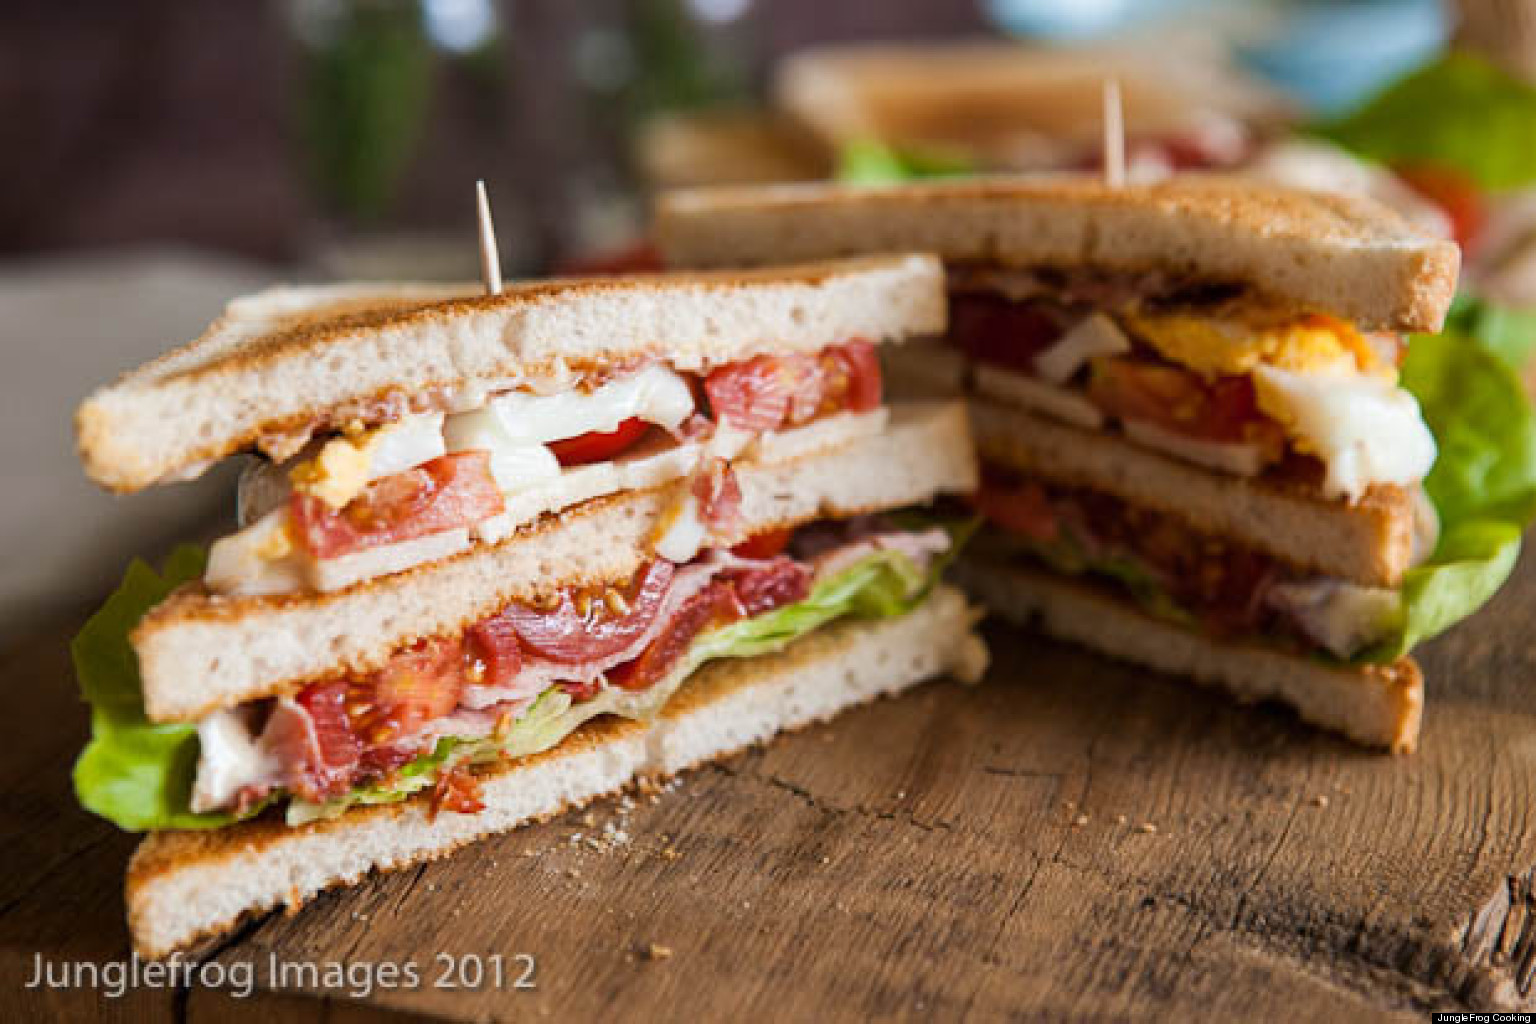 Club Sandwich Recipes: Turkey Is Amazing, But We Want More Variety ...